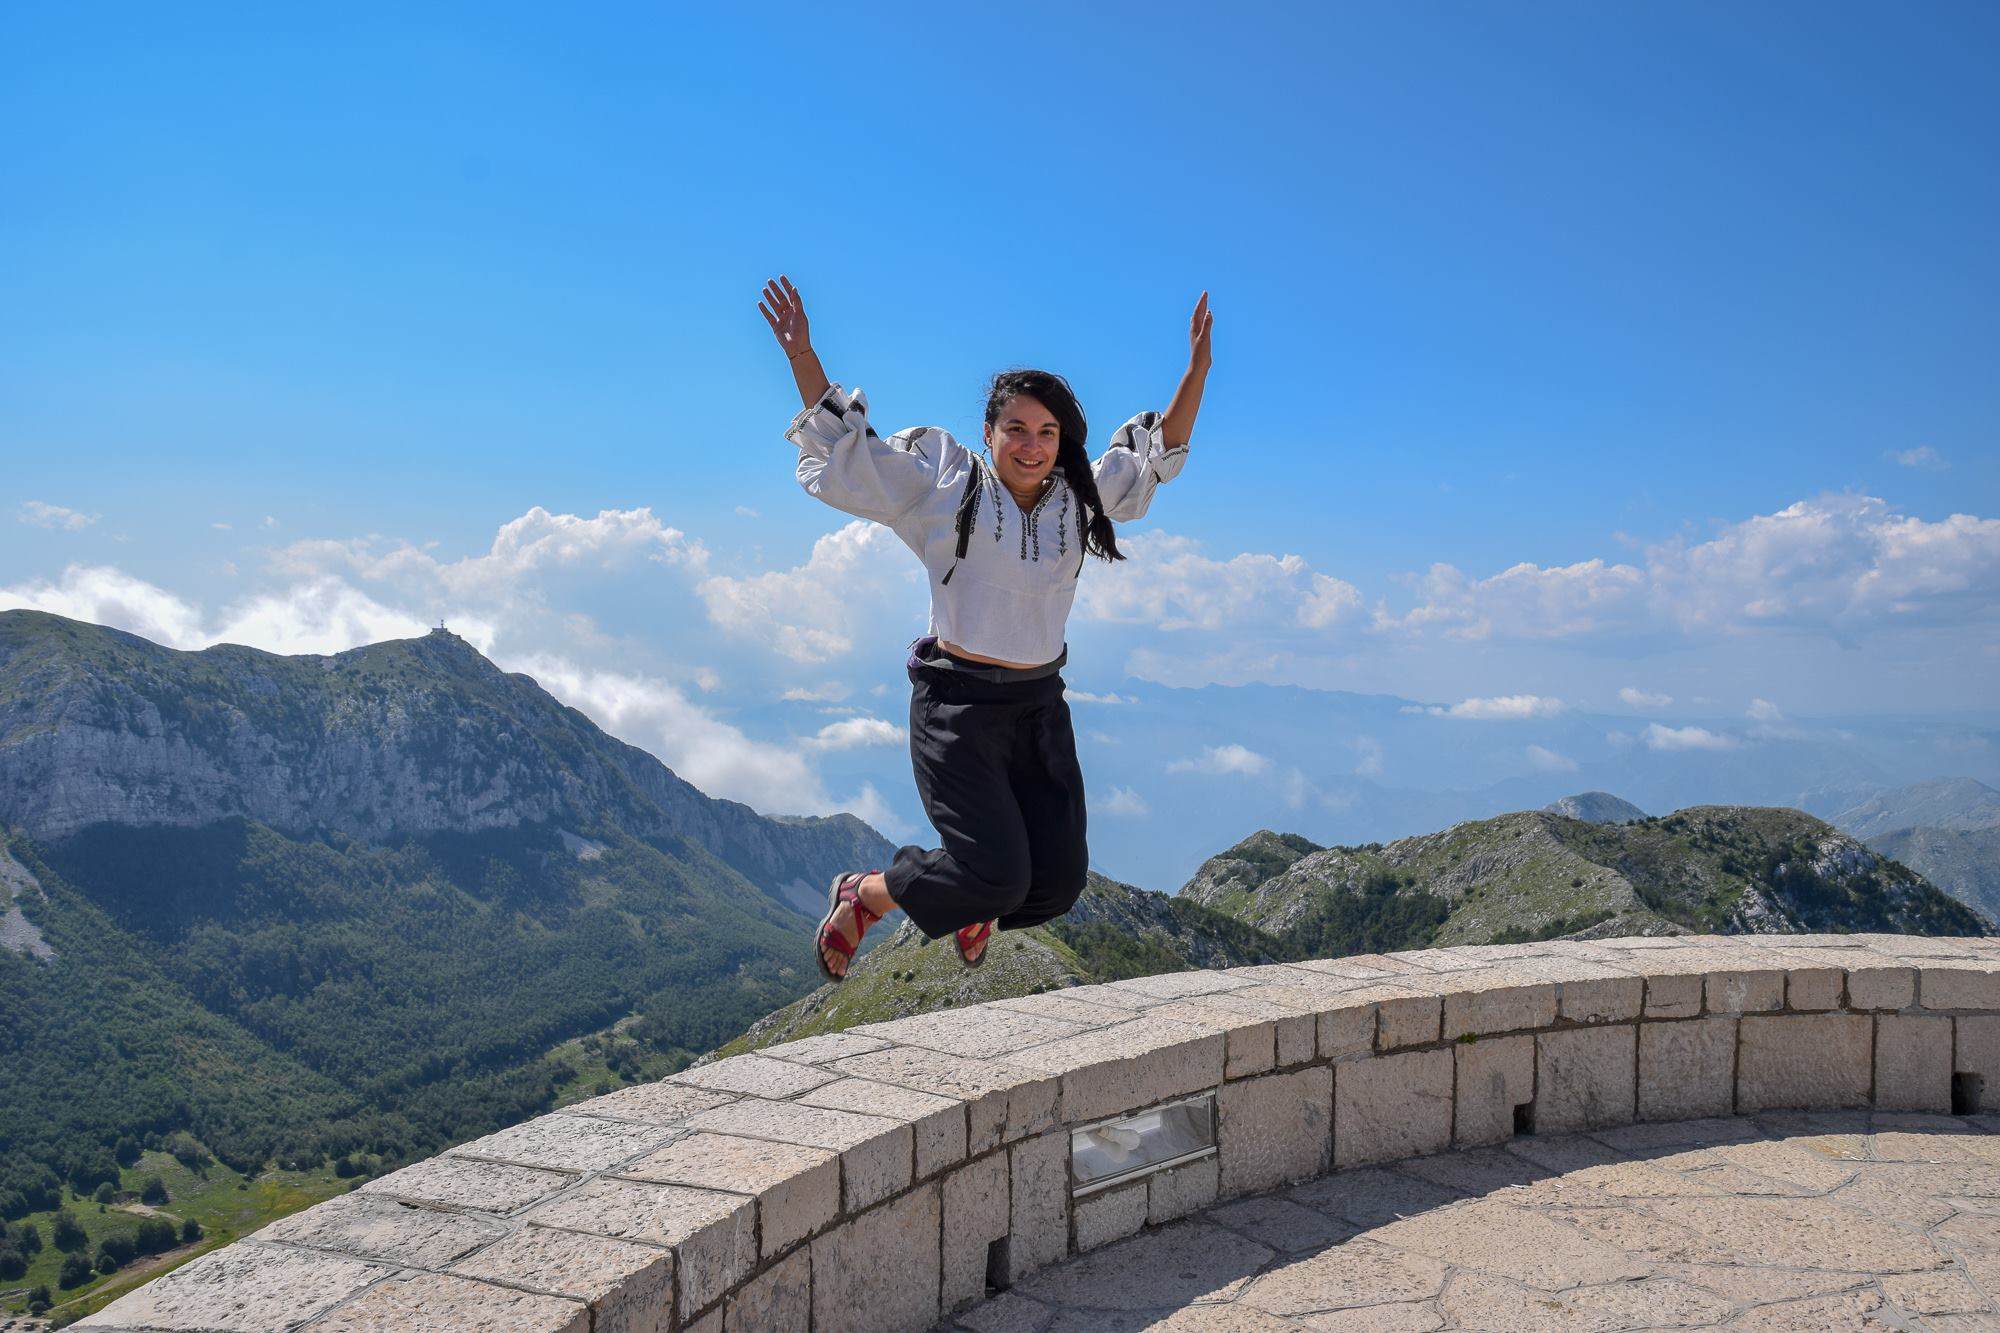 This YES thing felt scary and thrilling at the same time, much like jumping into the unknown :) Here I am in Montenegro, during my honeymoon in July.